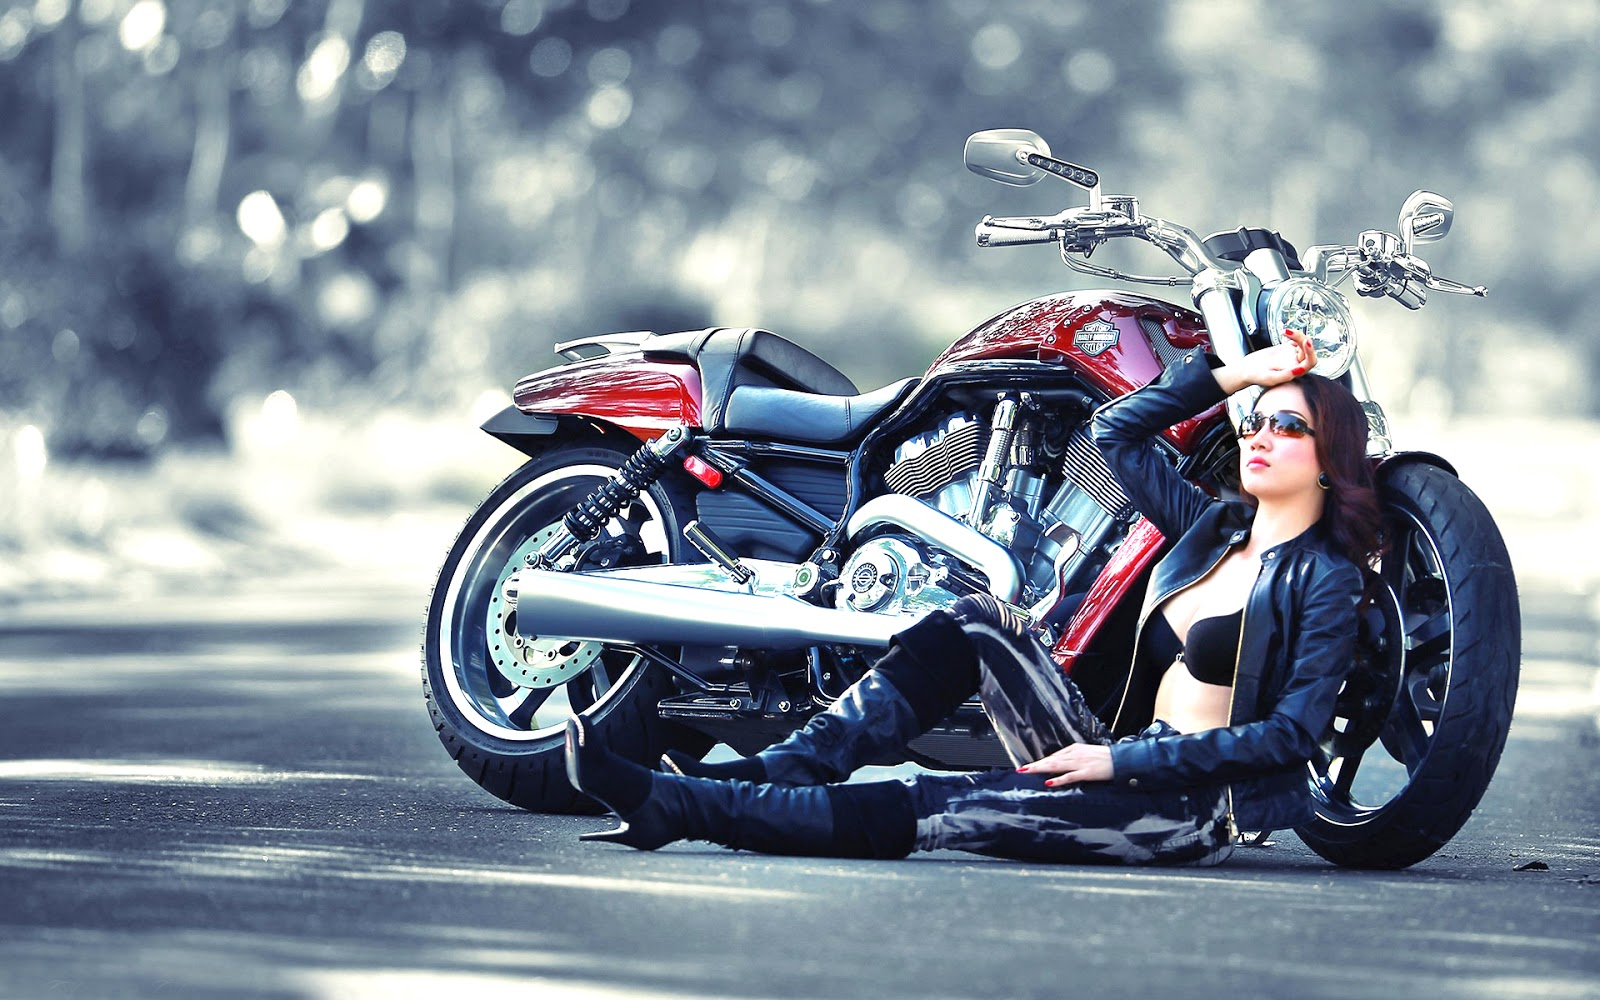 http://1.bp.blogspot.com/-ddvbfxoN5Fc/UQ5-Y0Y7BzI/AAAAAAAAF3Q/cuK8FzmGn6c/s1600/2013_Hot_asian_bike_model_HD_wallpaper.jpg